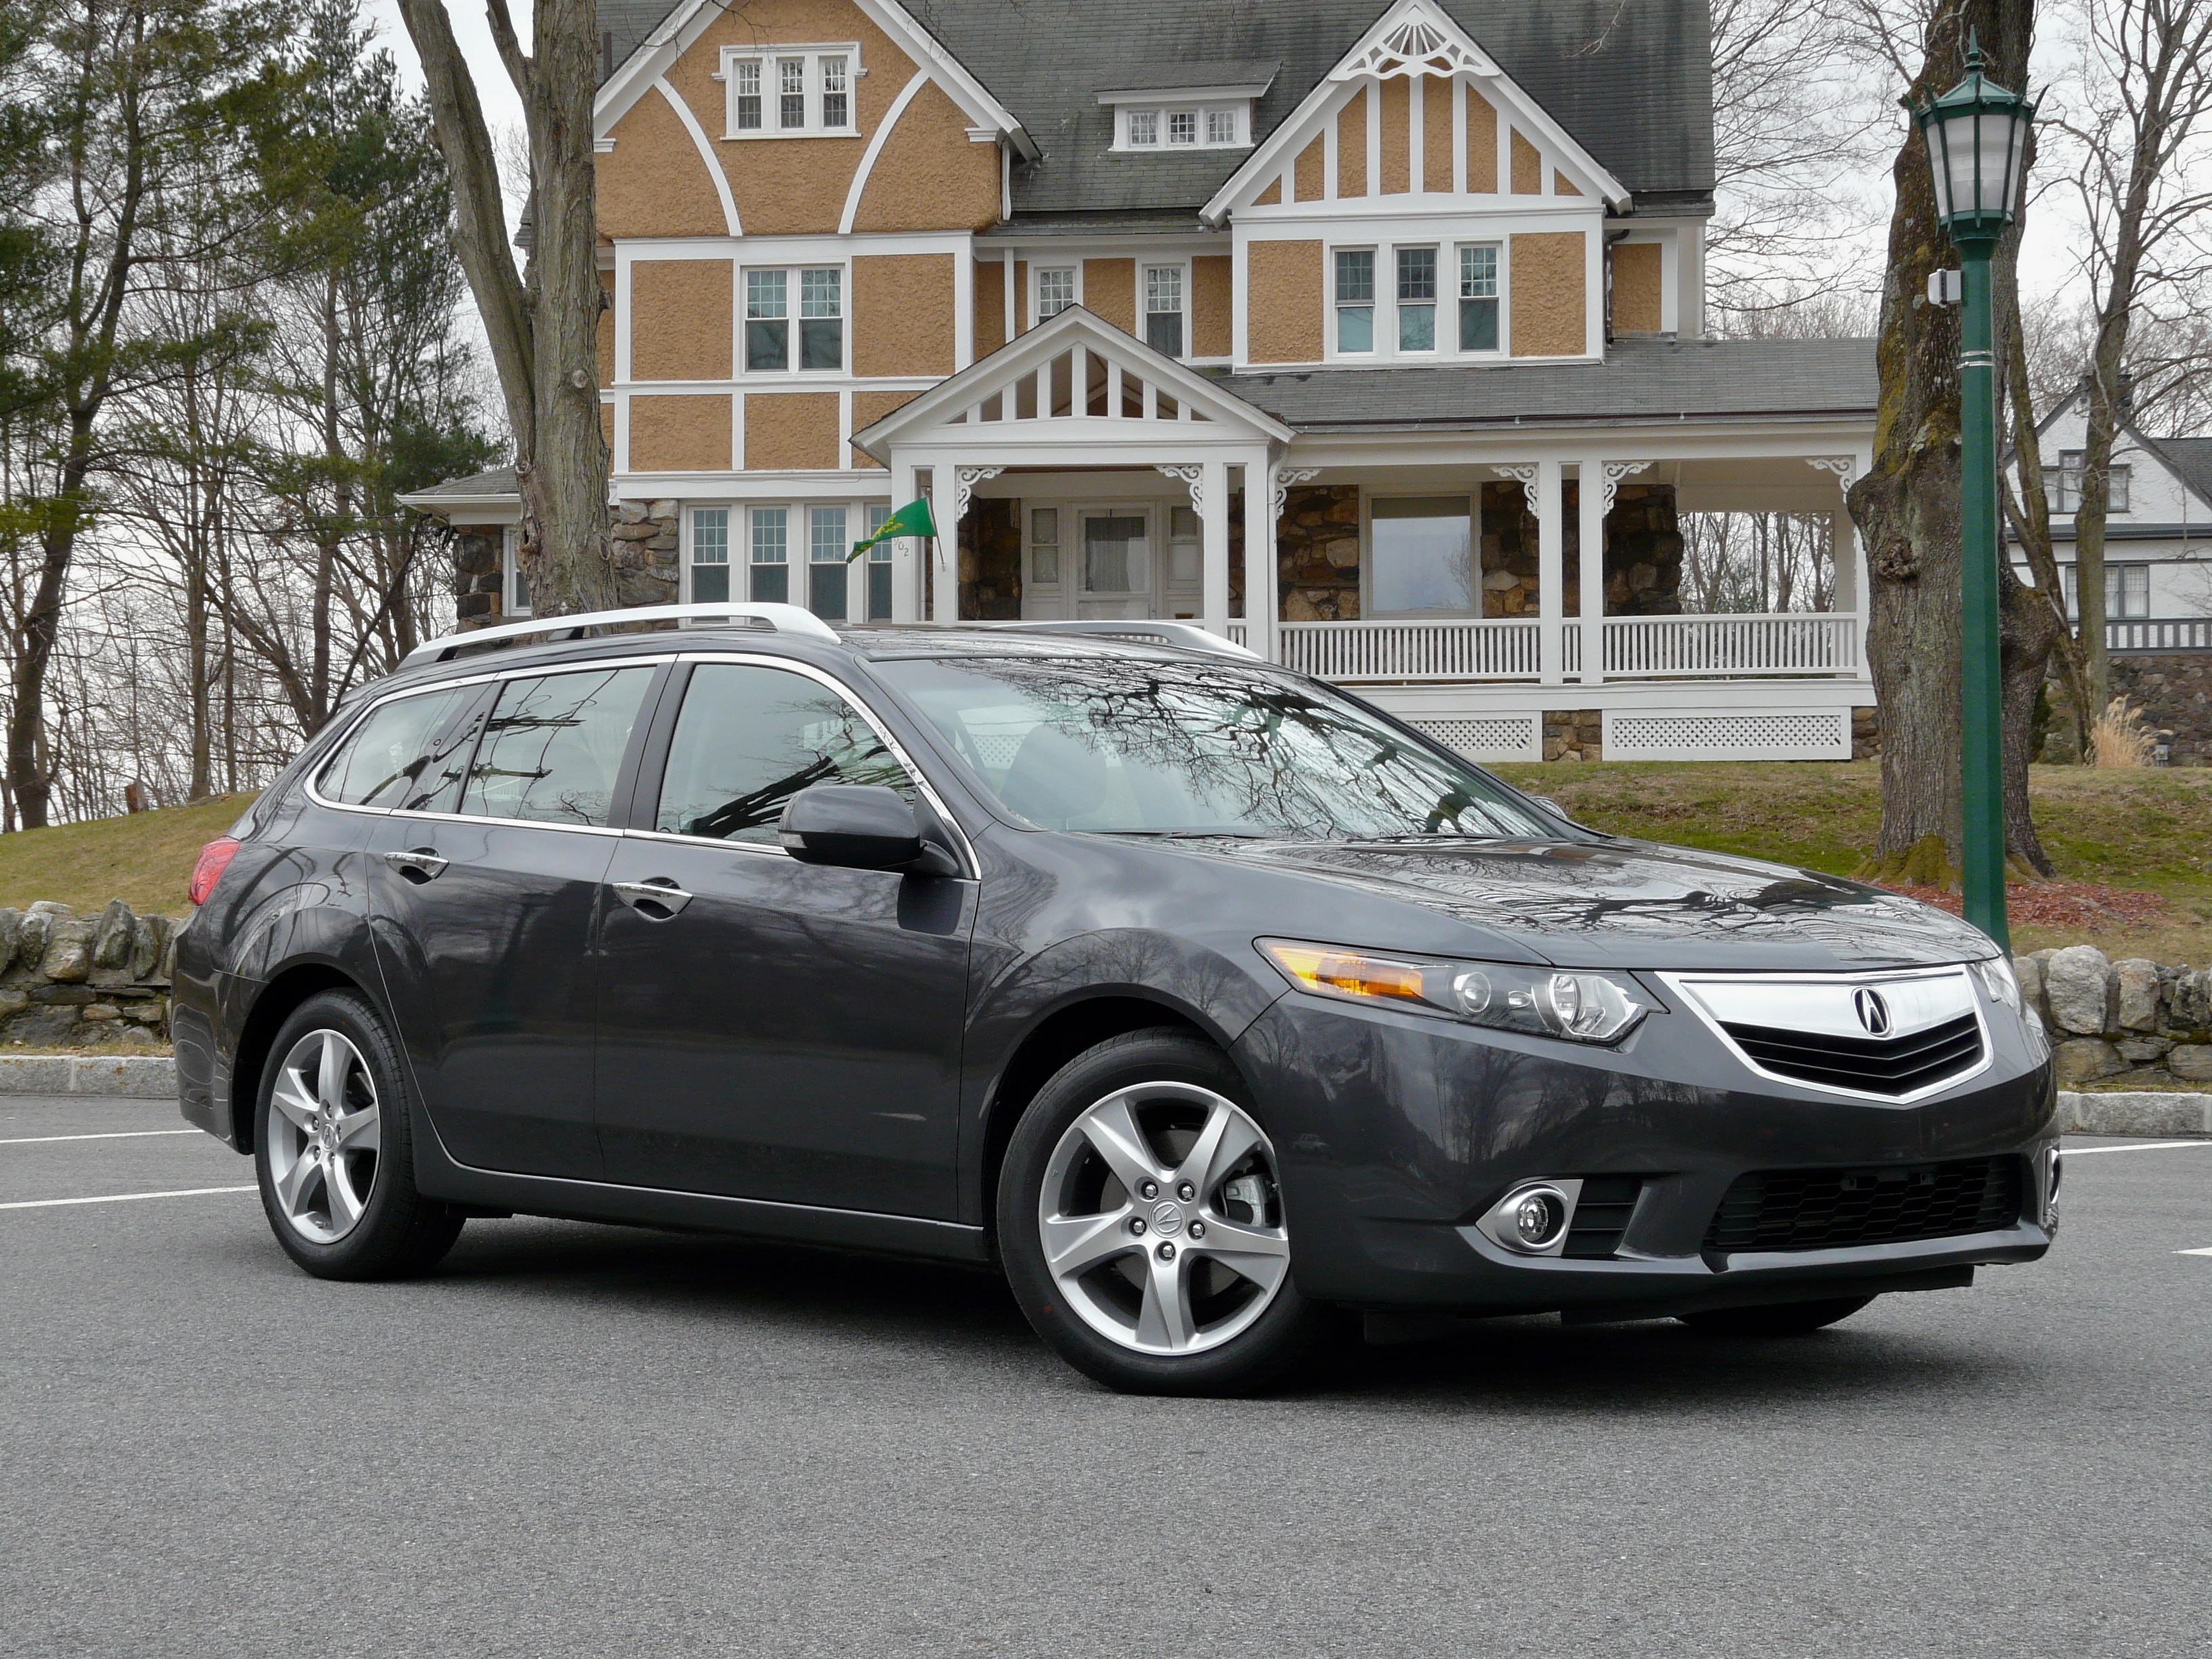 img package acura w cars obo stock nj speed tech k hills forums loc short fs manual tsx sale for member